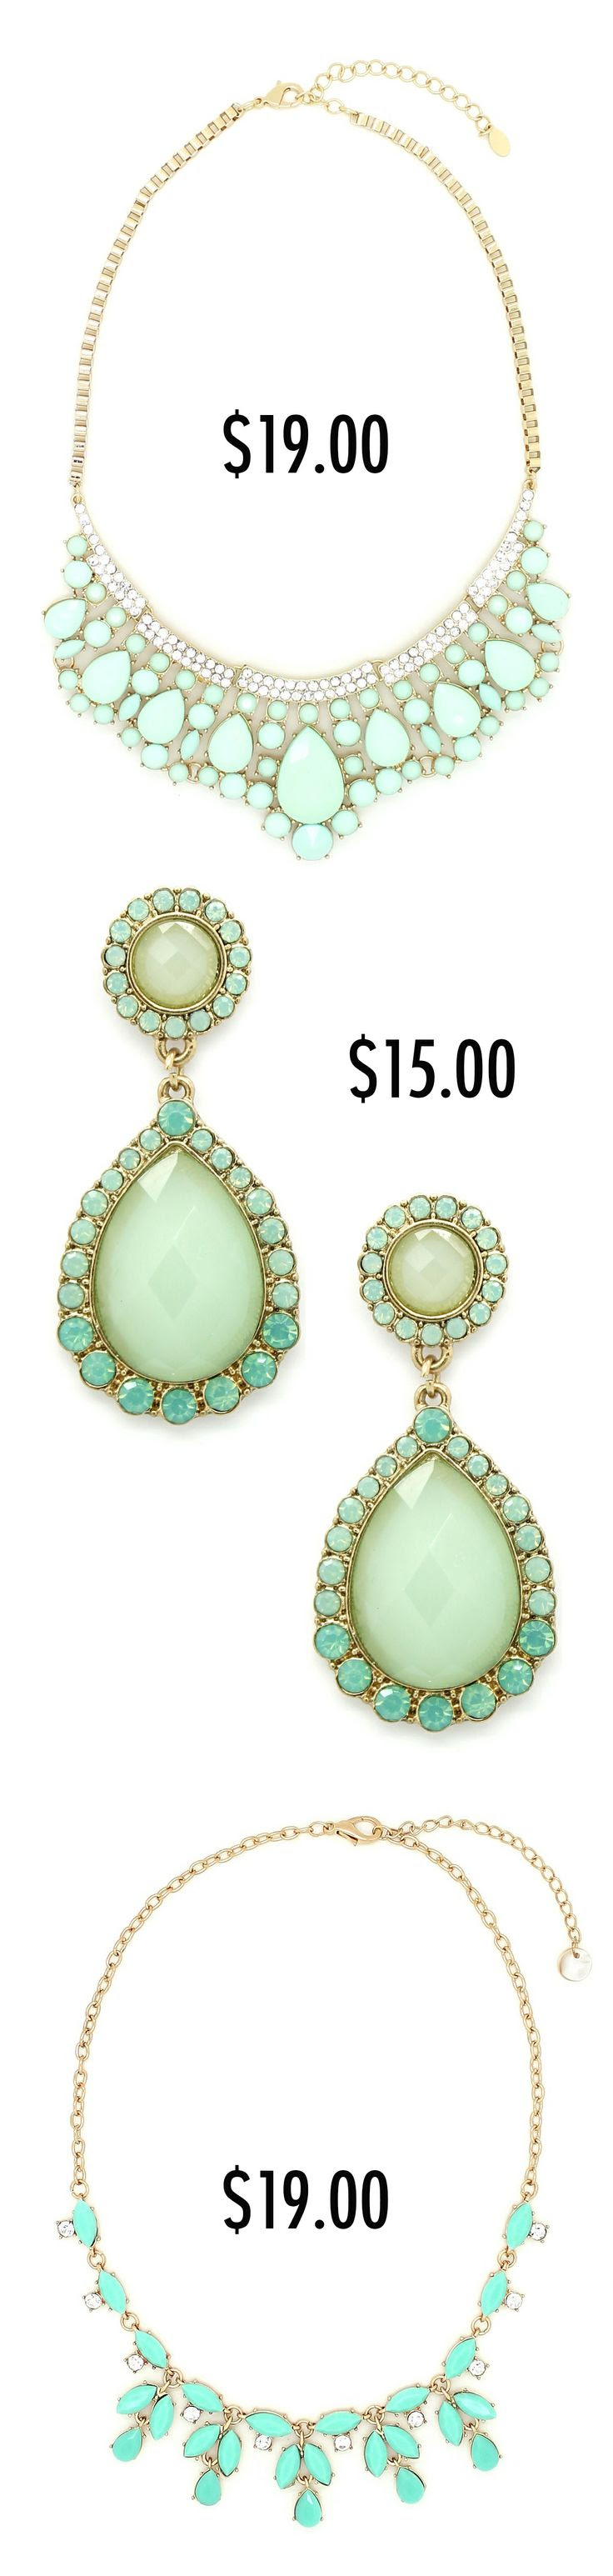 Jewelry under $19.00 from Eye Candy Los Angeles - so many cute colors!